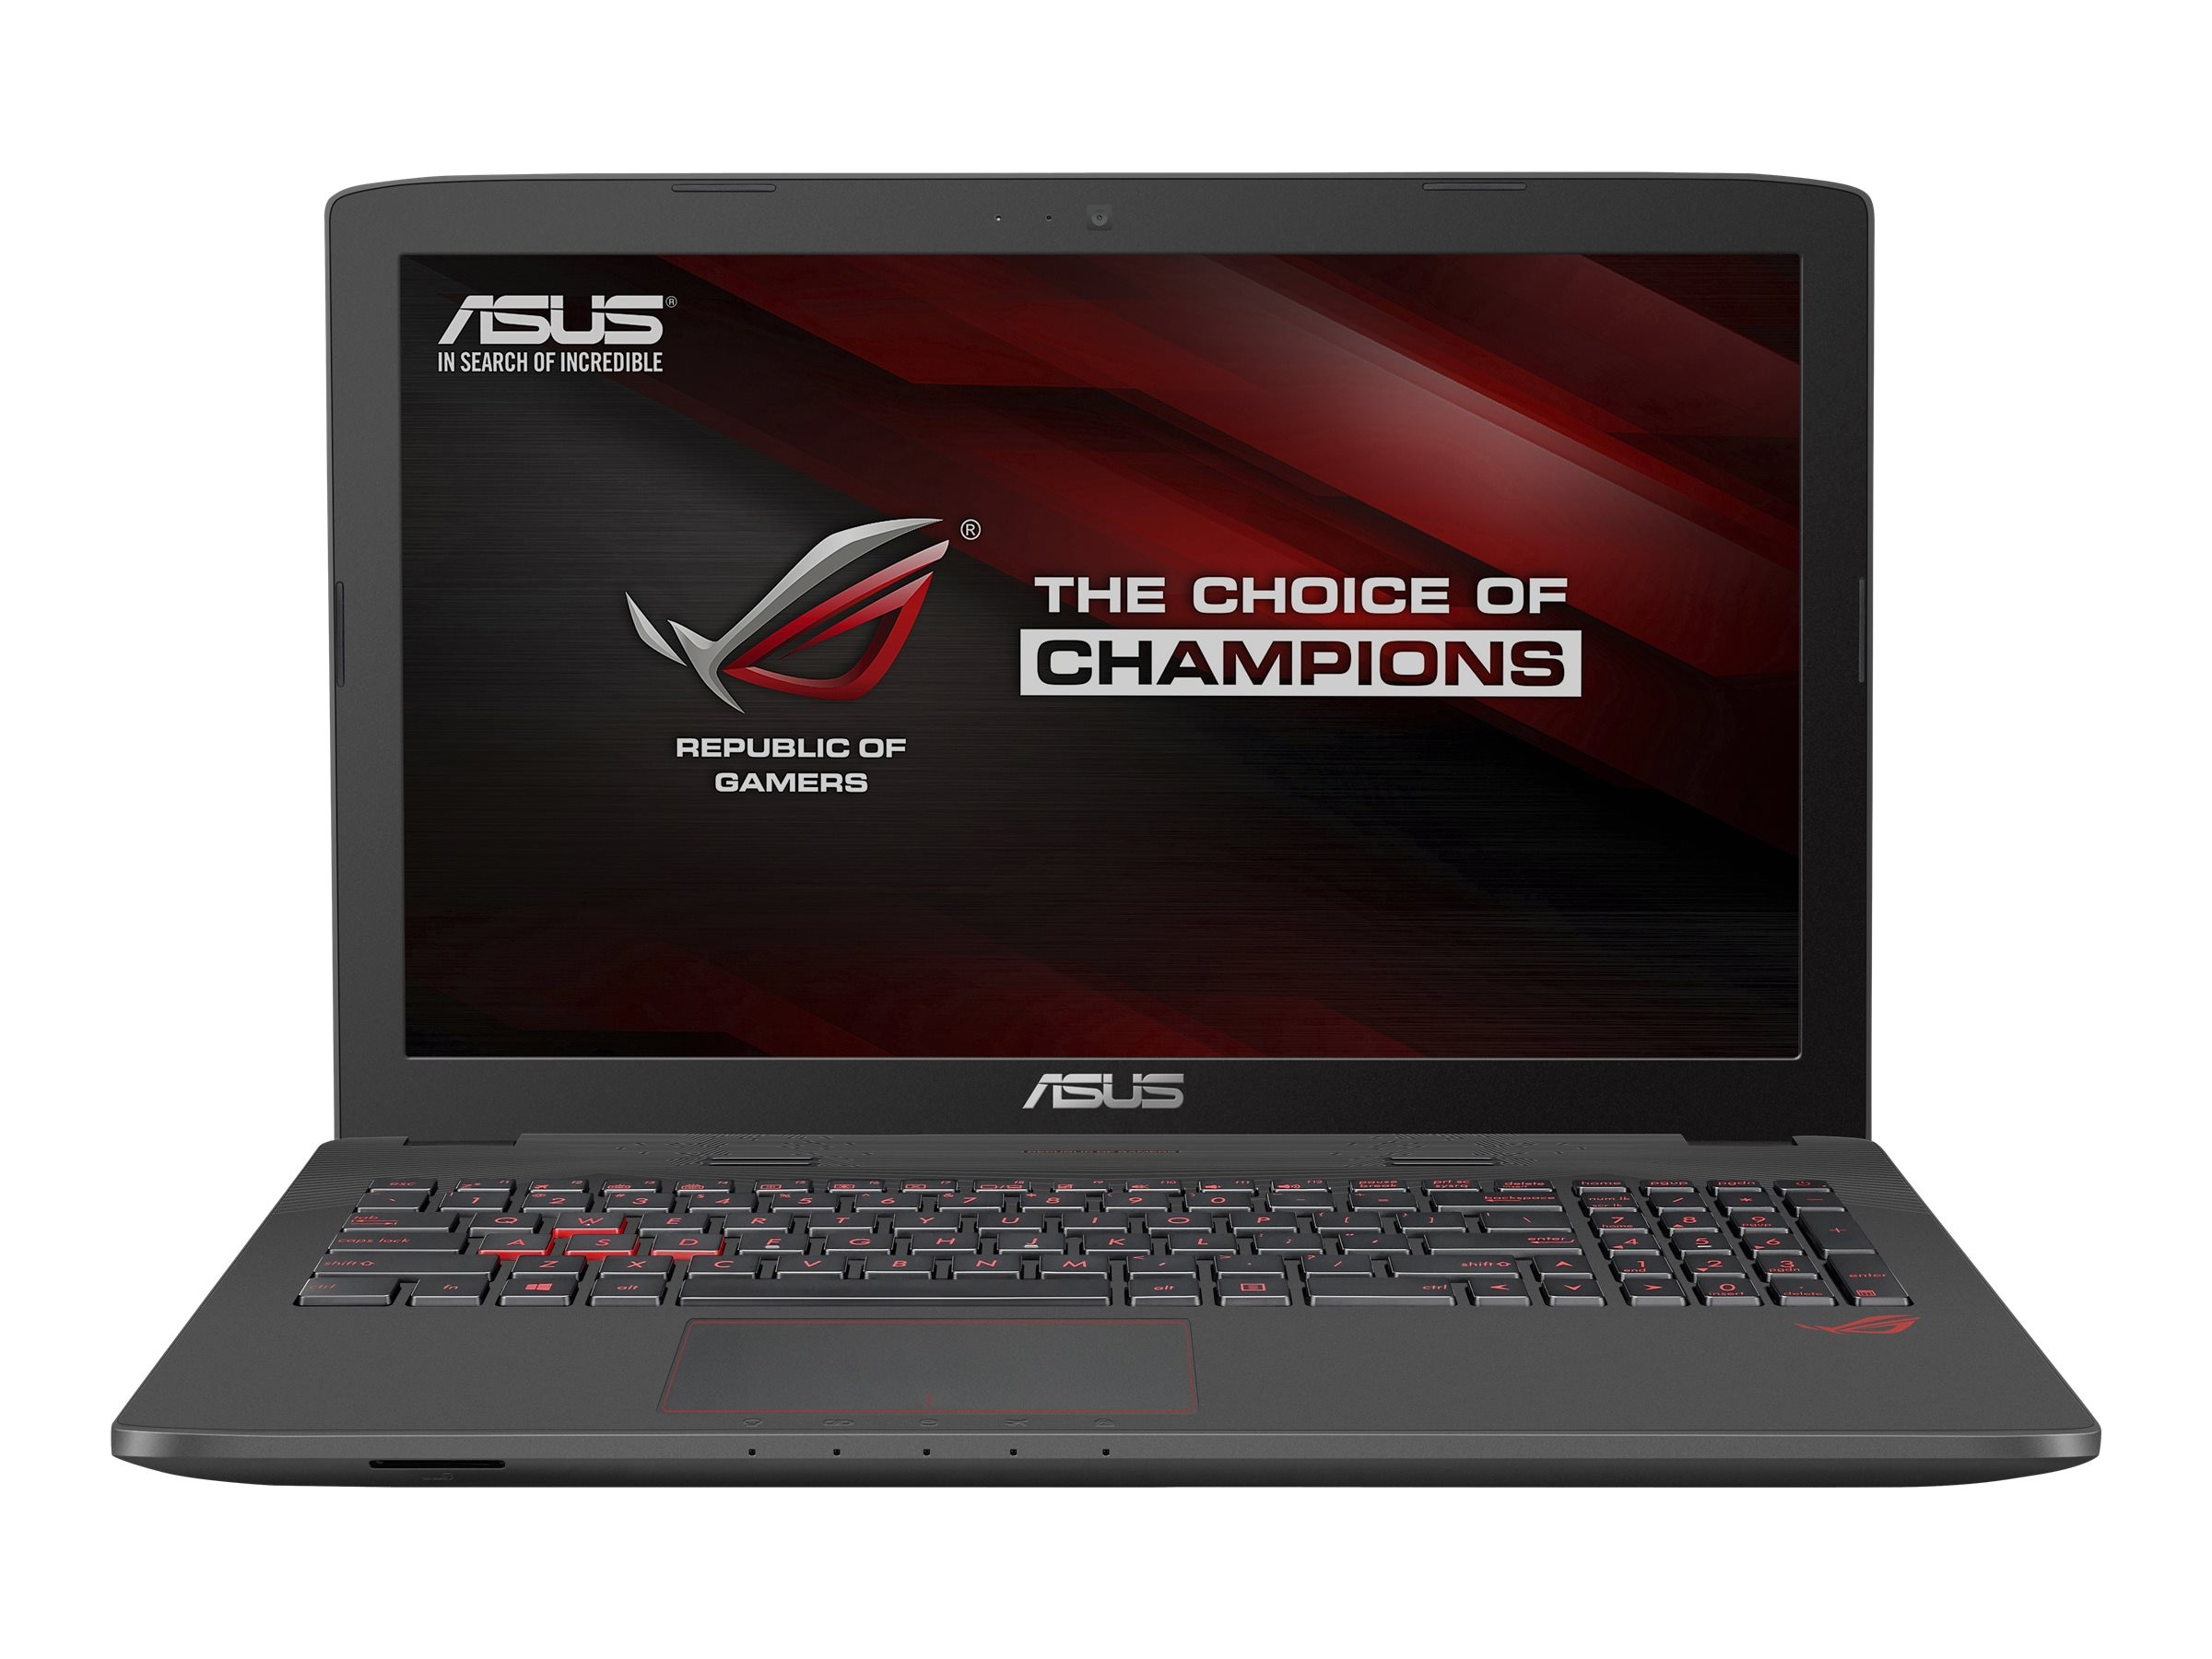 Asus GL752VW-DH74 Image 2